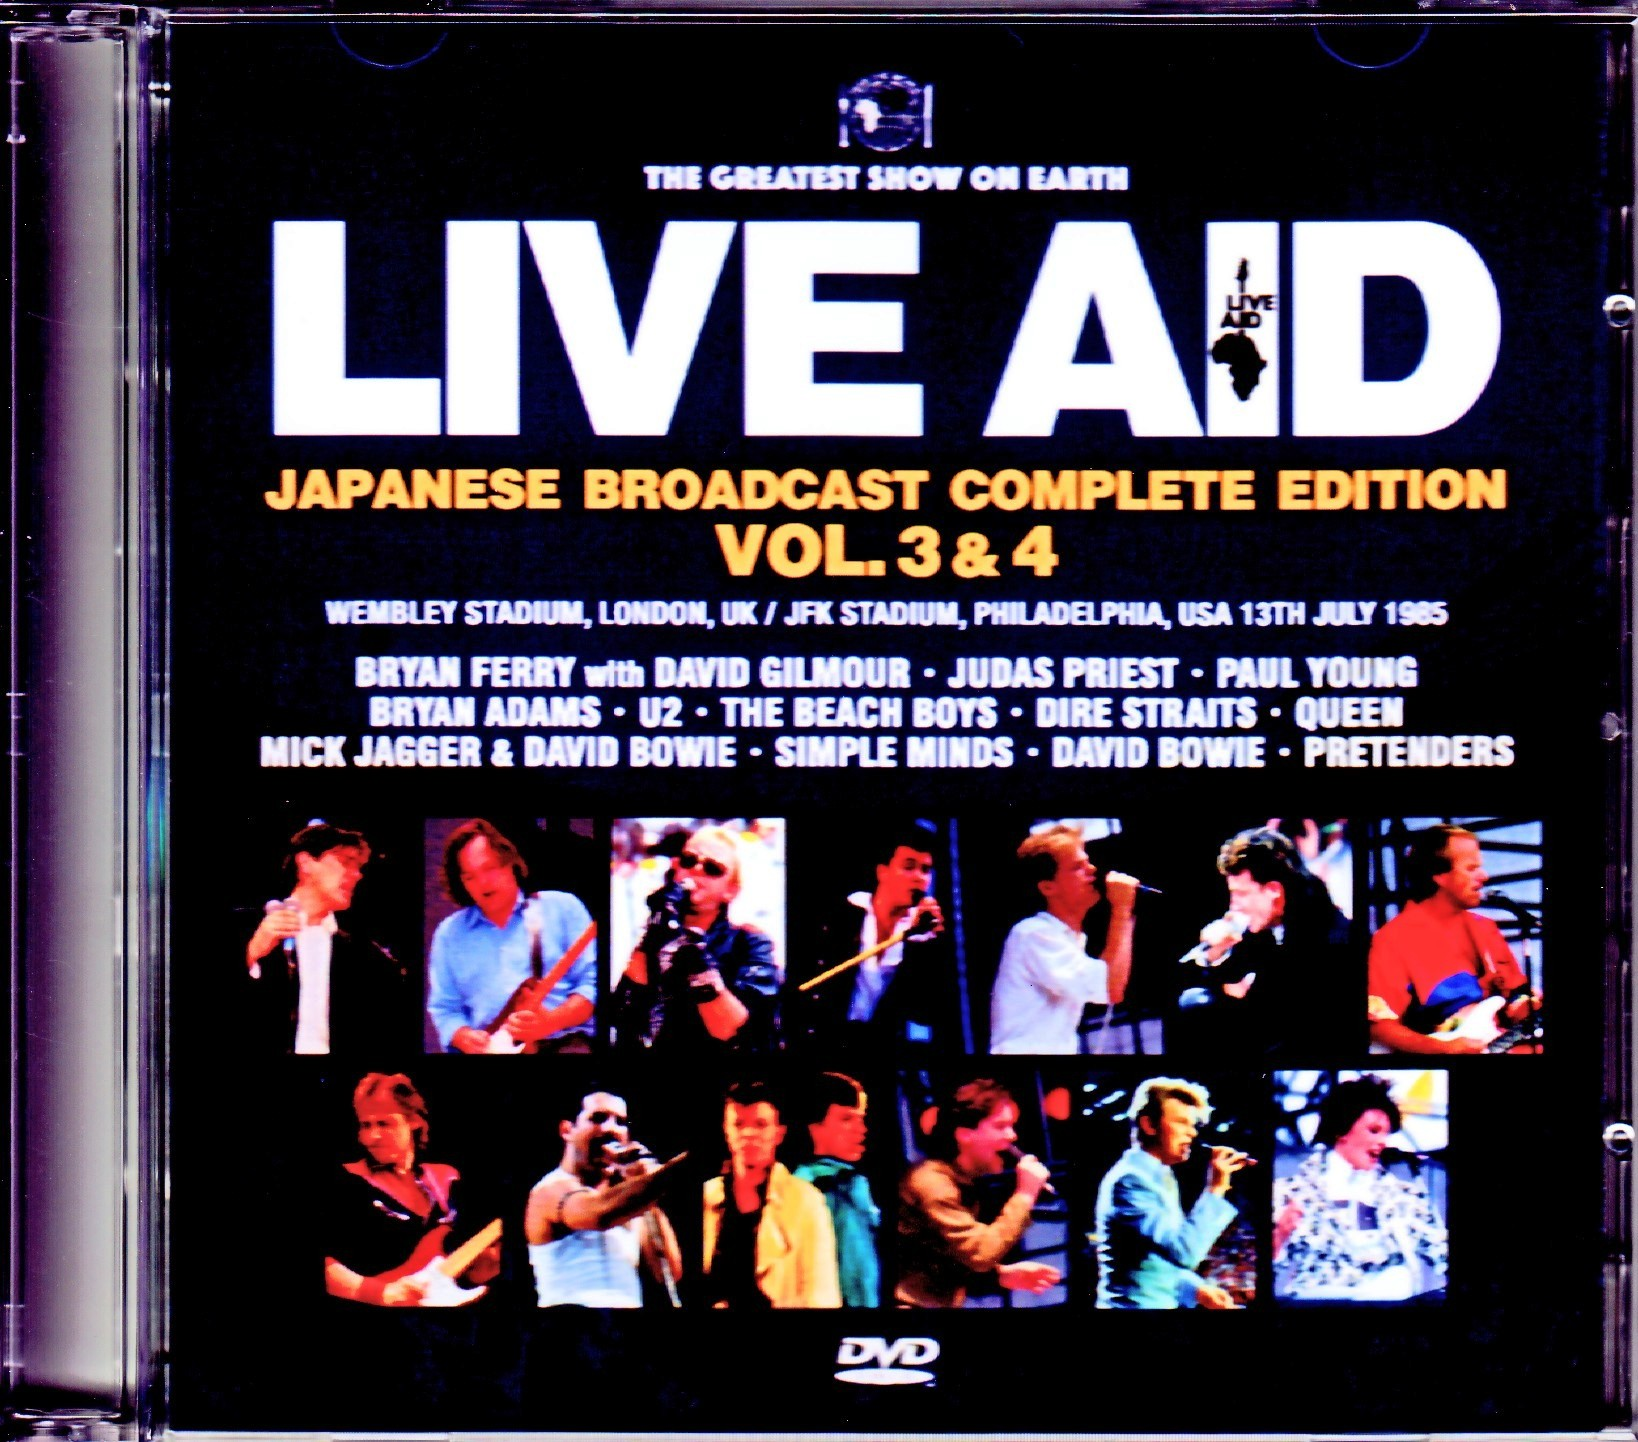 Various Artists Queen,Beach Boys,Dire Straits,David Bowie/London,UK & PA,USA 1985 Japanese Broadcast Complete Vol.3 & 4